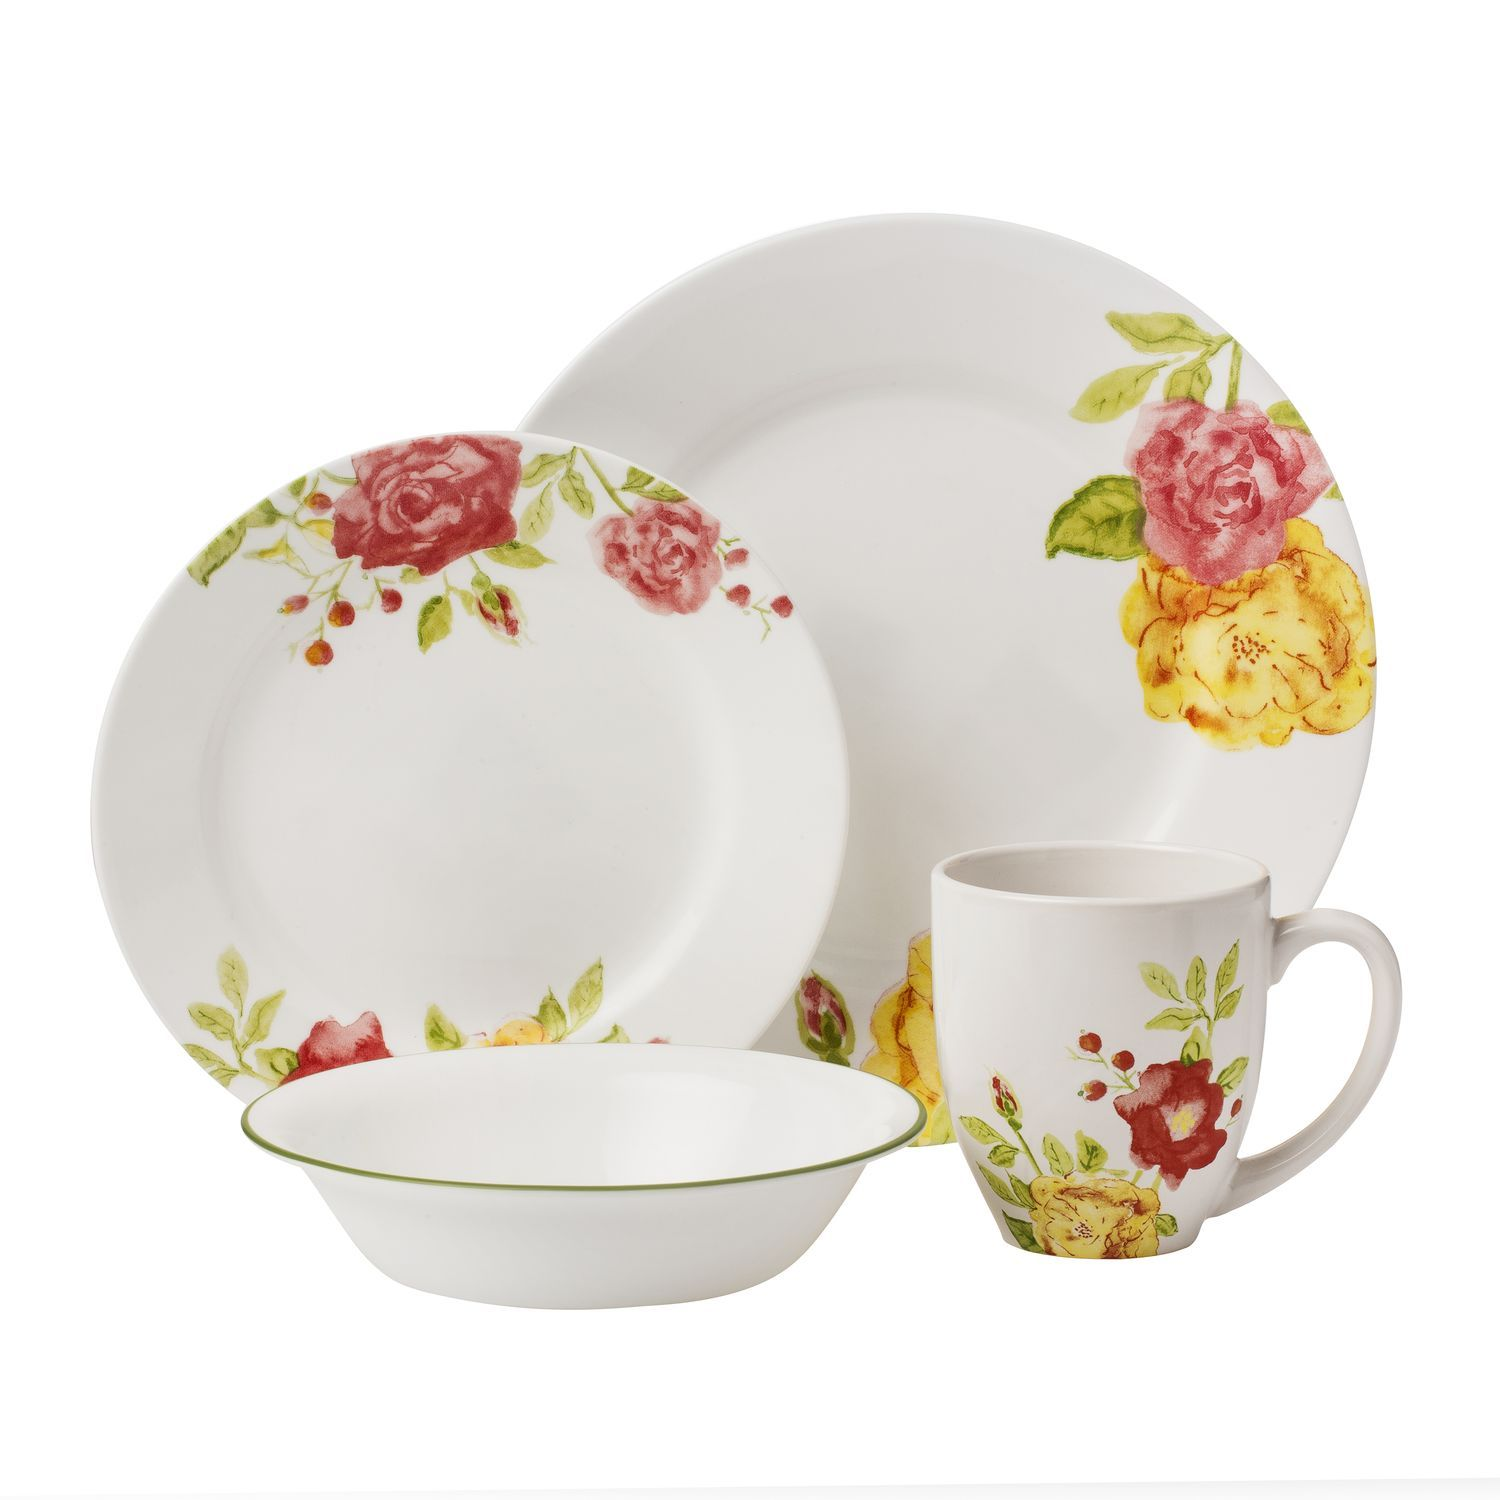 Corelle® Boutique™ Emma Jane 16-pc Dinnerware Set - Corelle  sc 1 st  Pinterest : corelle 16 pc dinnerware set - pezcame.com